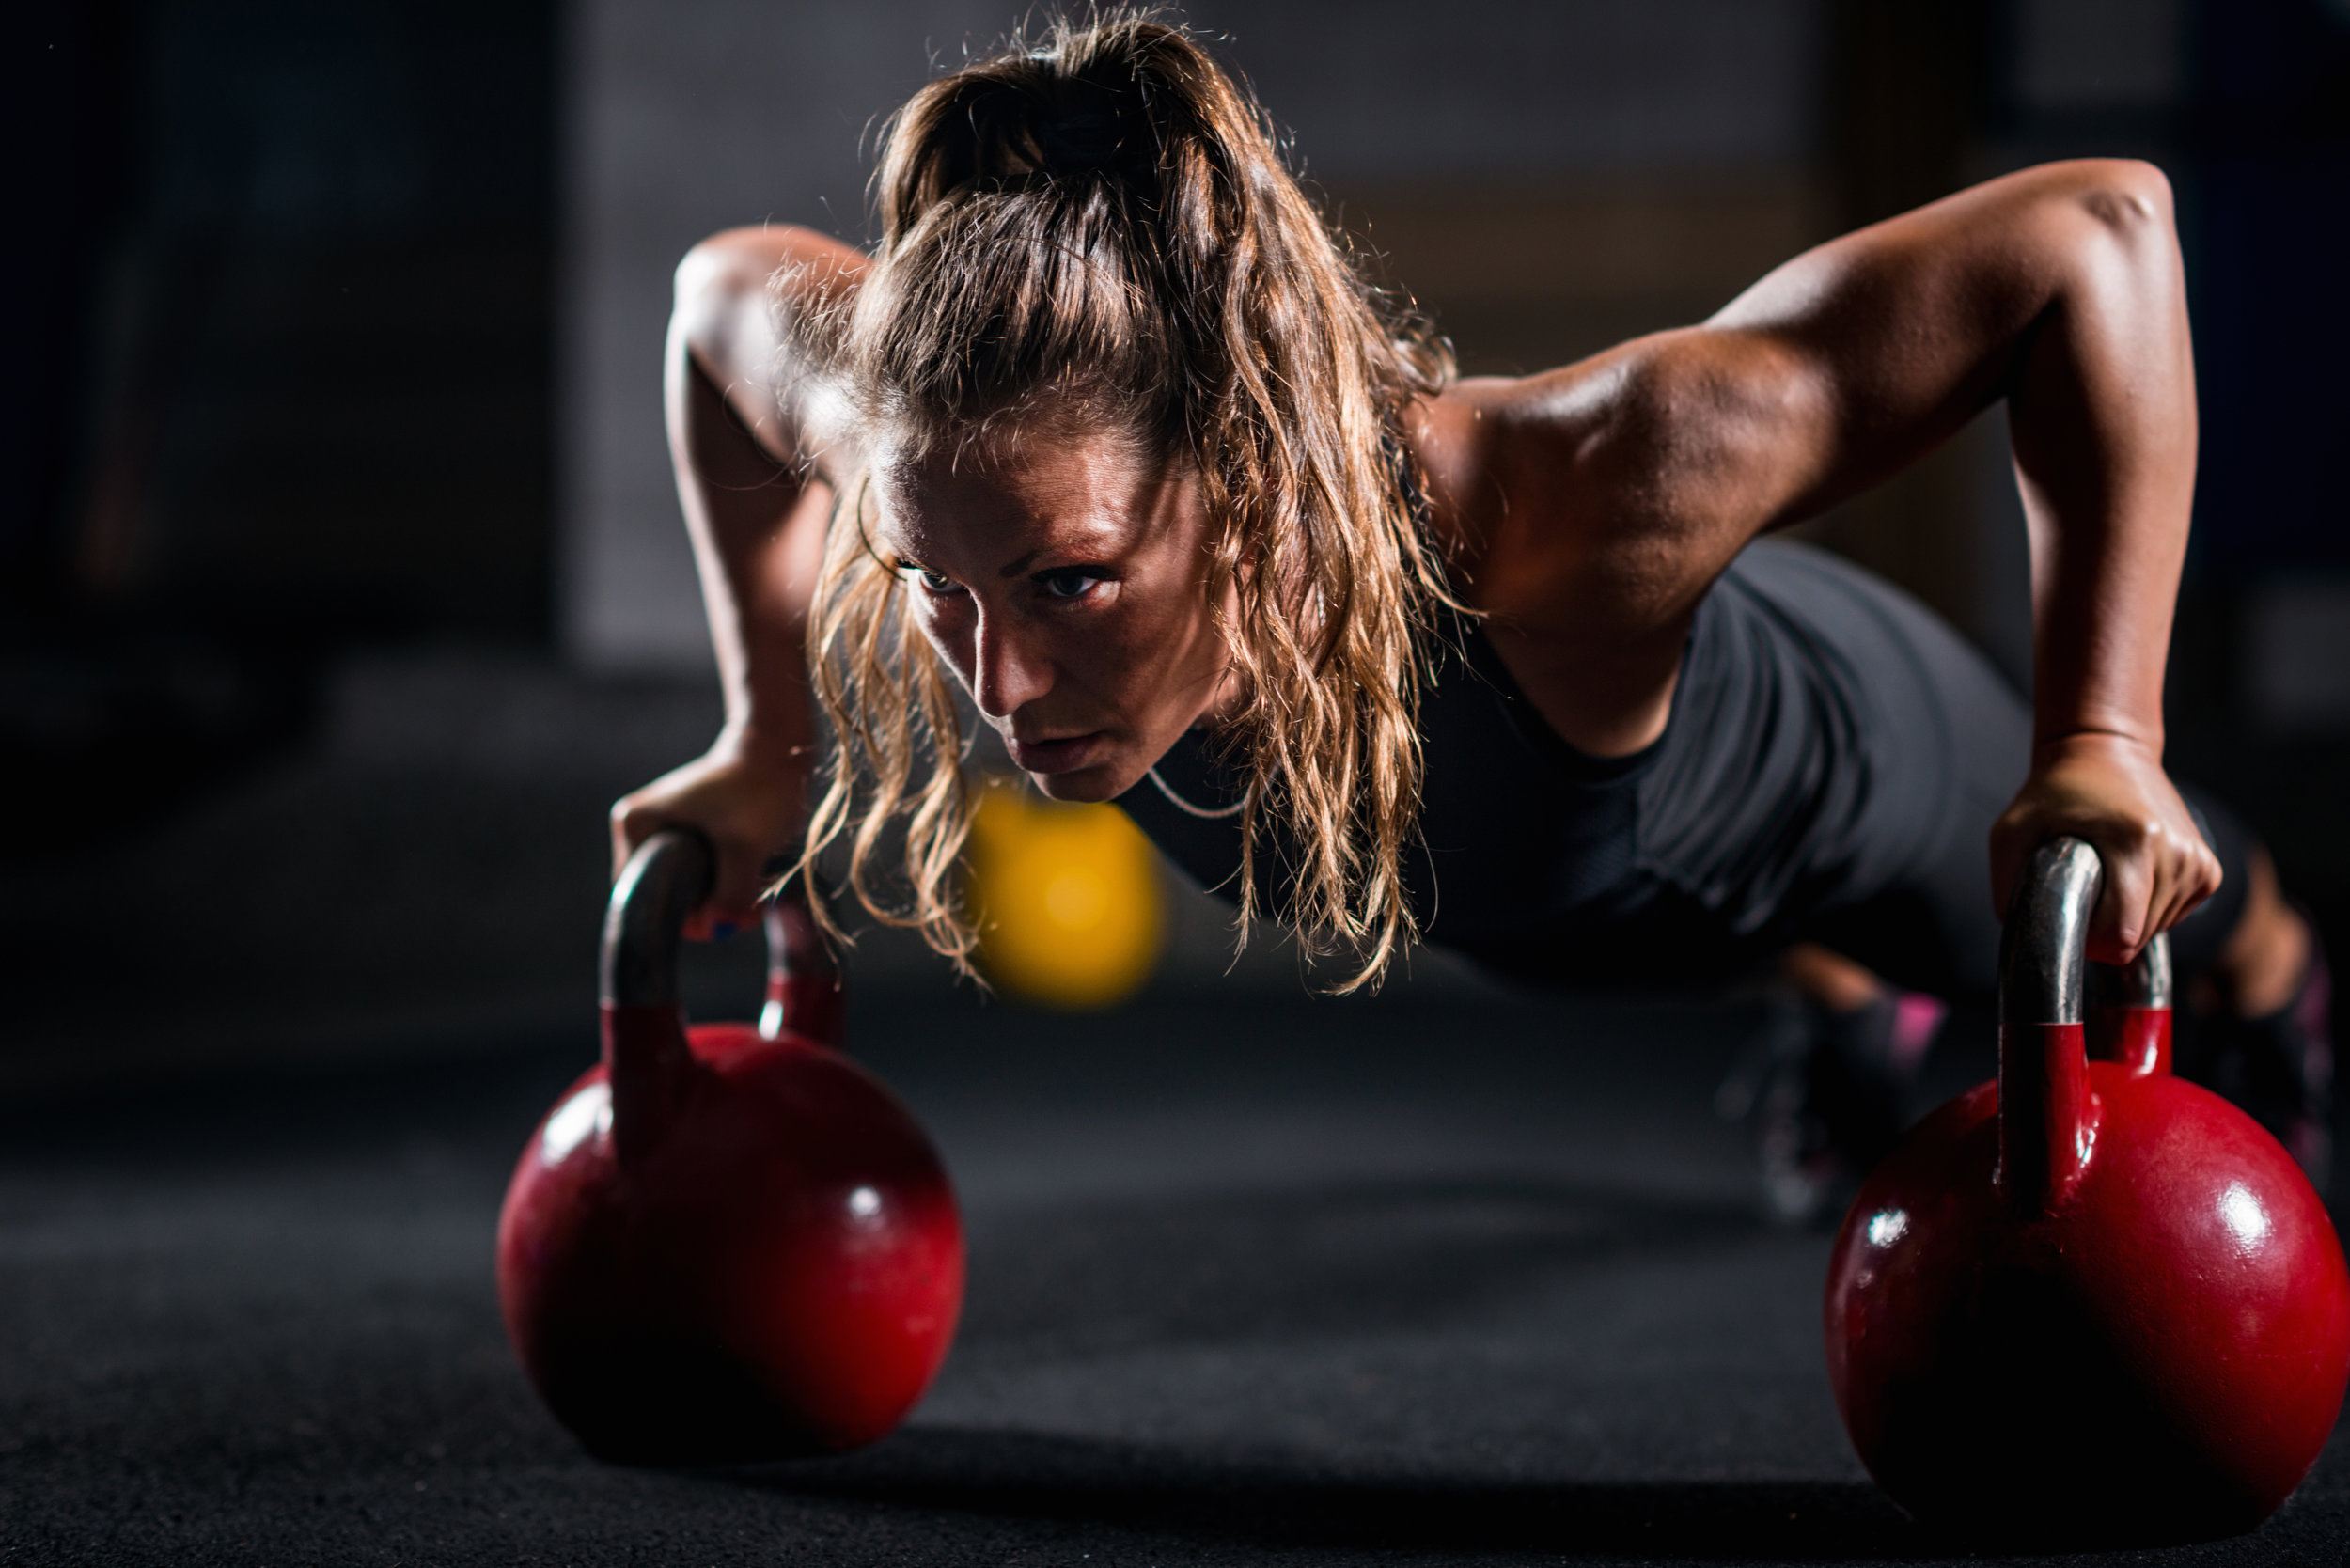 woman-athlete-exercising-with-kettlebell-PXY85YJ.jpg